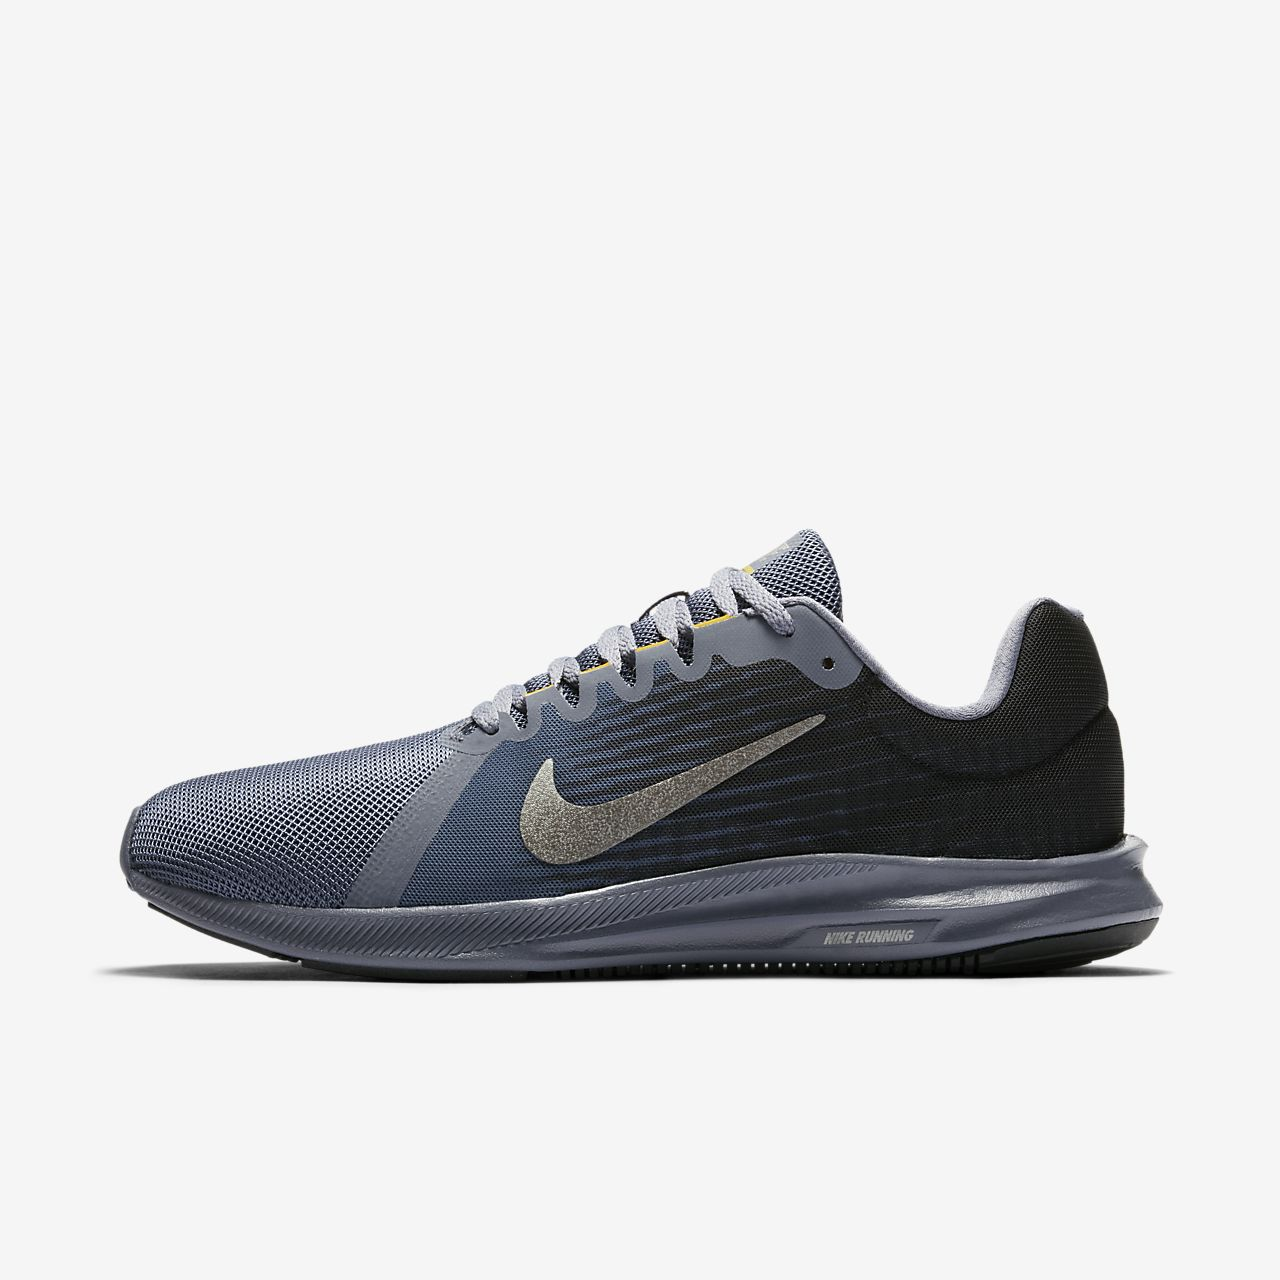 aecba6111712 Nike Downshifter 8 Men s Running Shoe. Nike.com GB